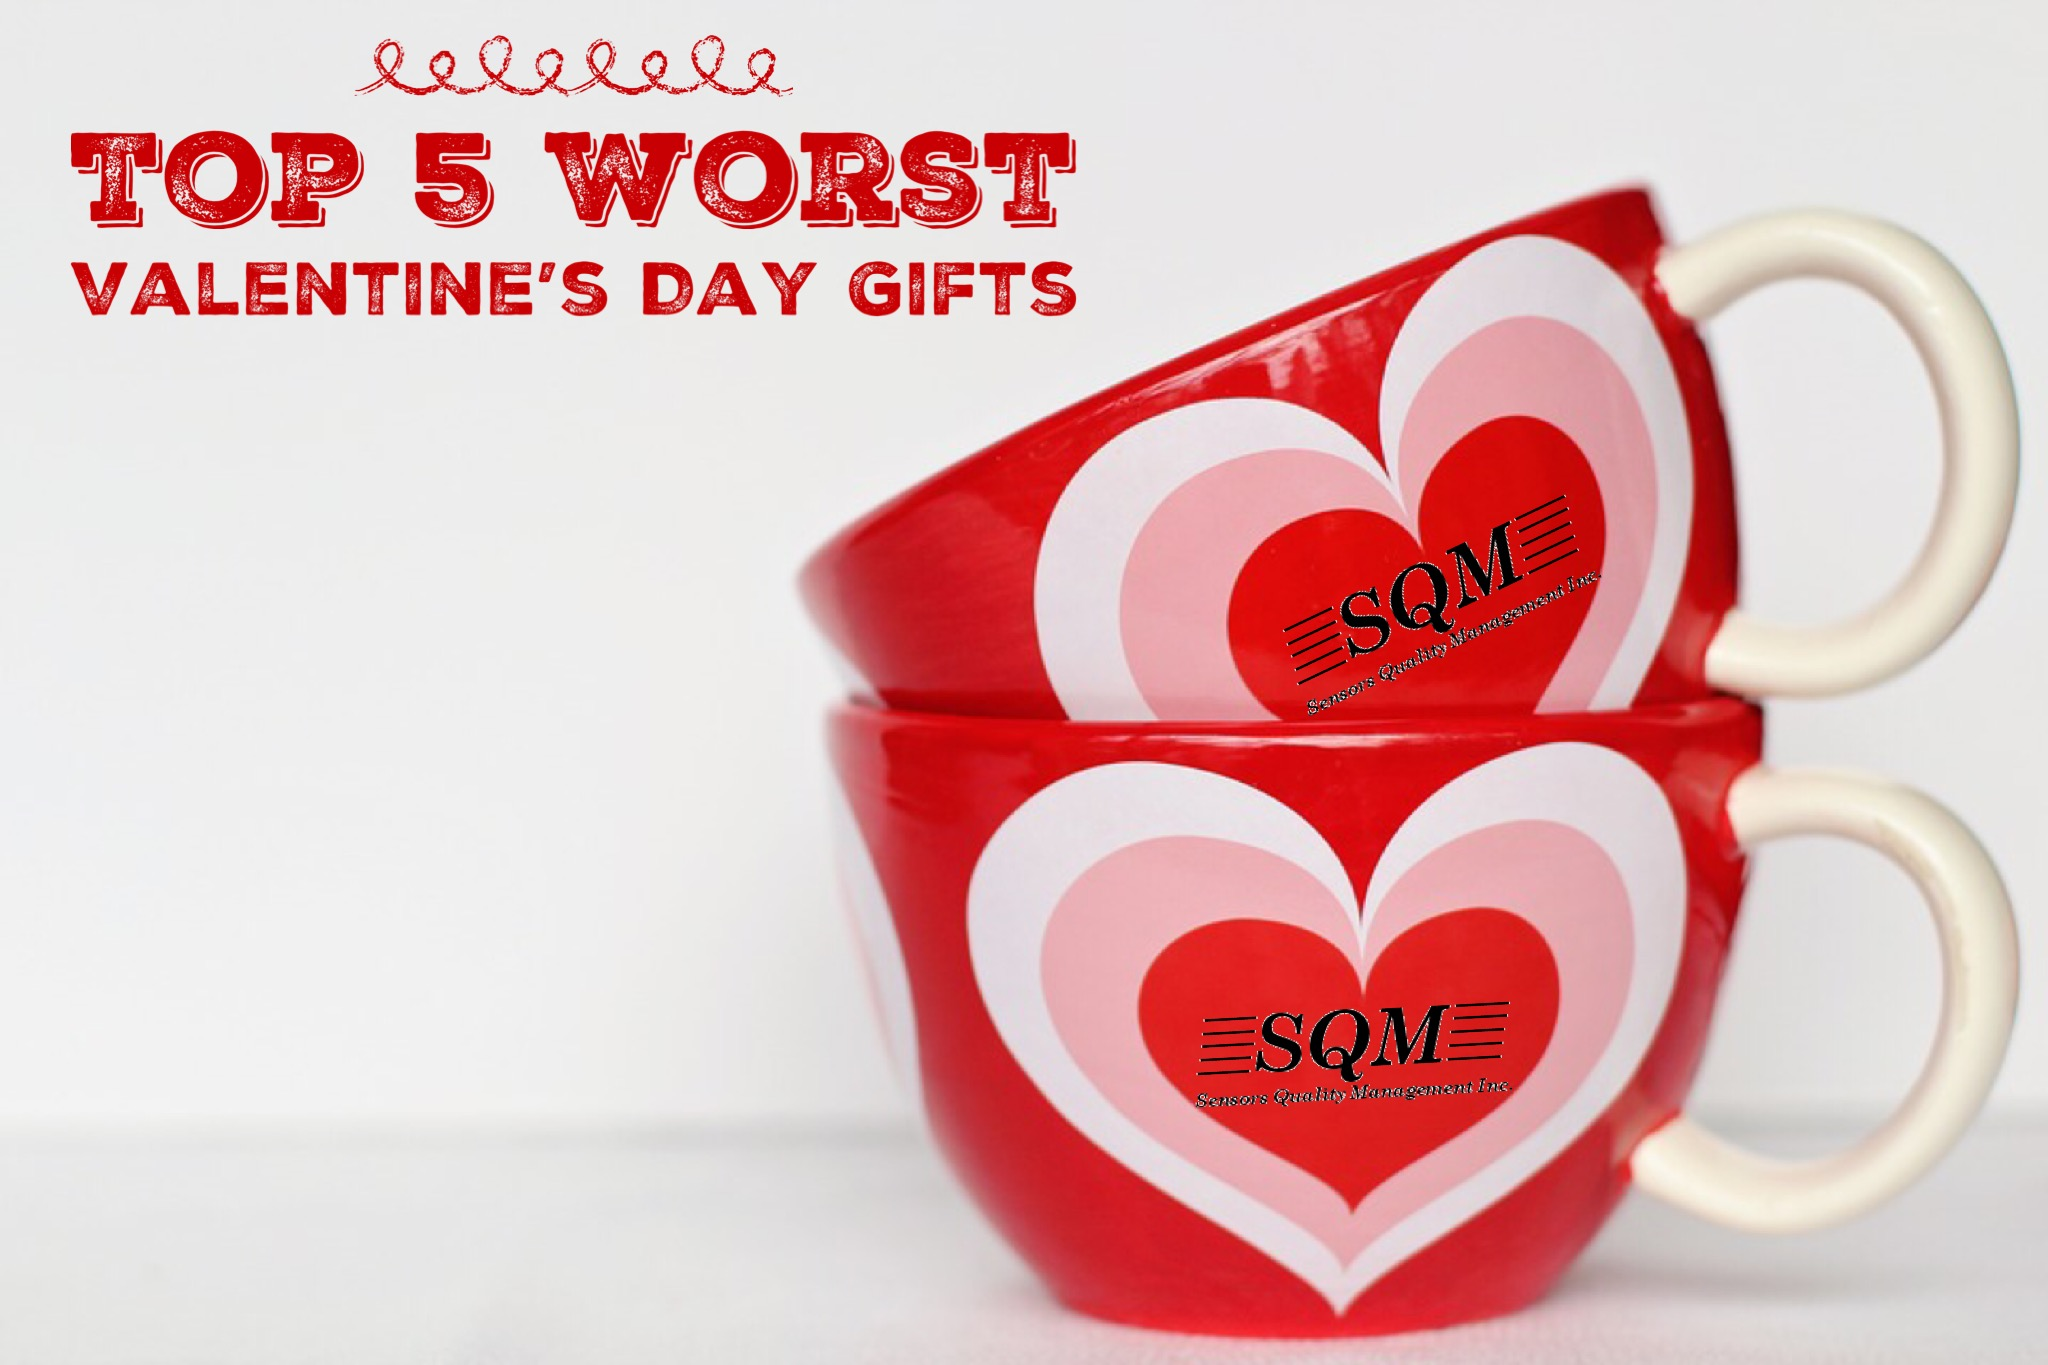 Top 5 Worst Valentine's Day Gifts